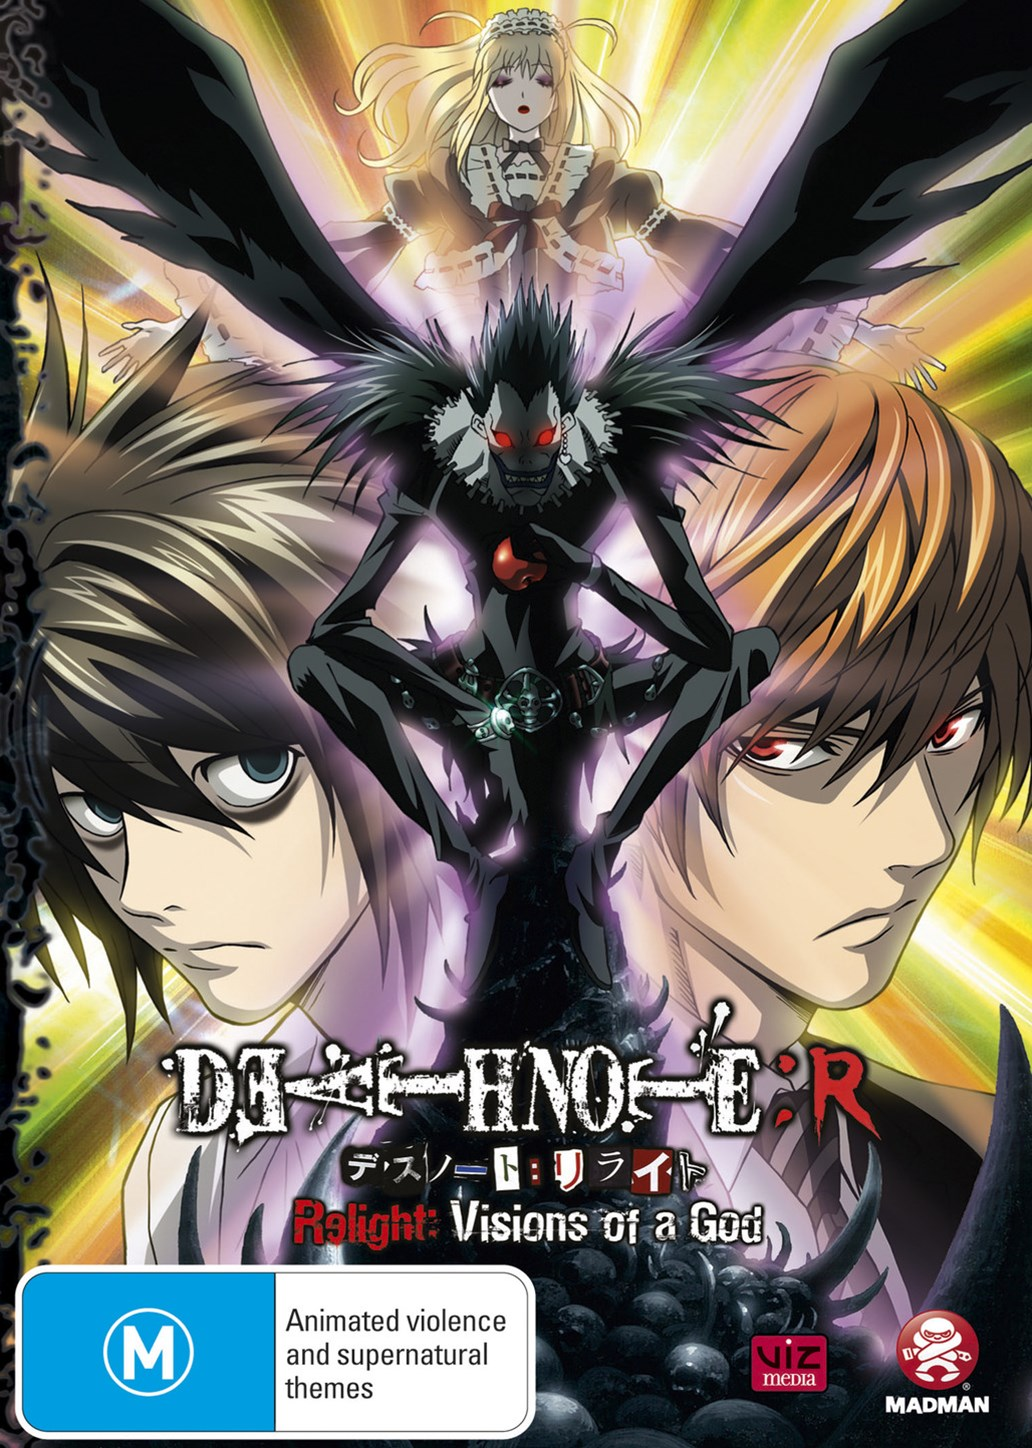 Death Note Relight 1 - Visions of a God (Director's Cut)